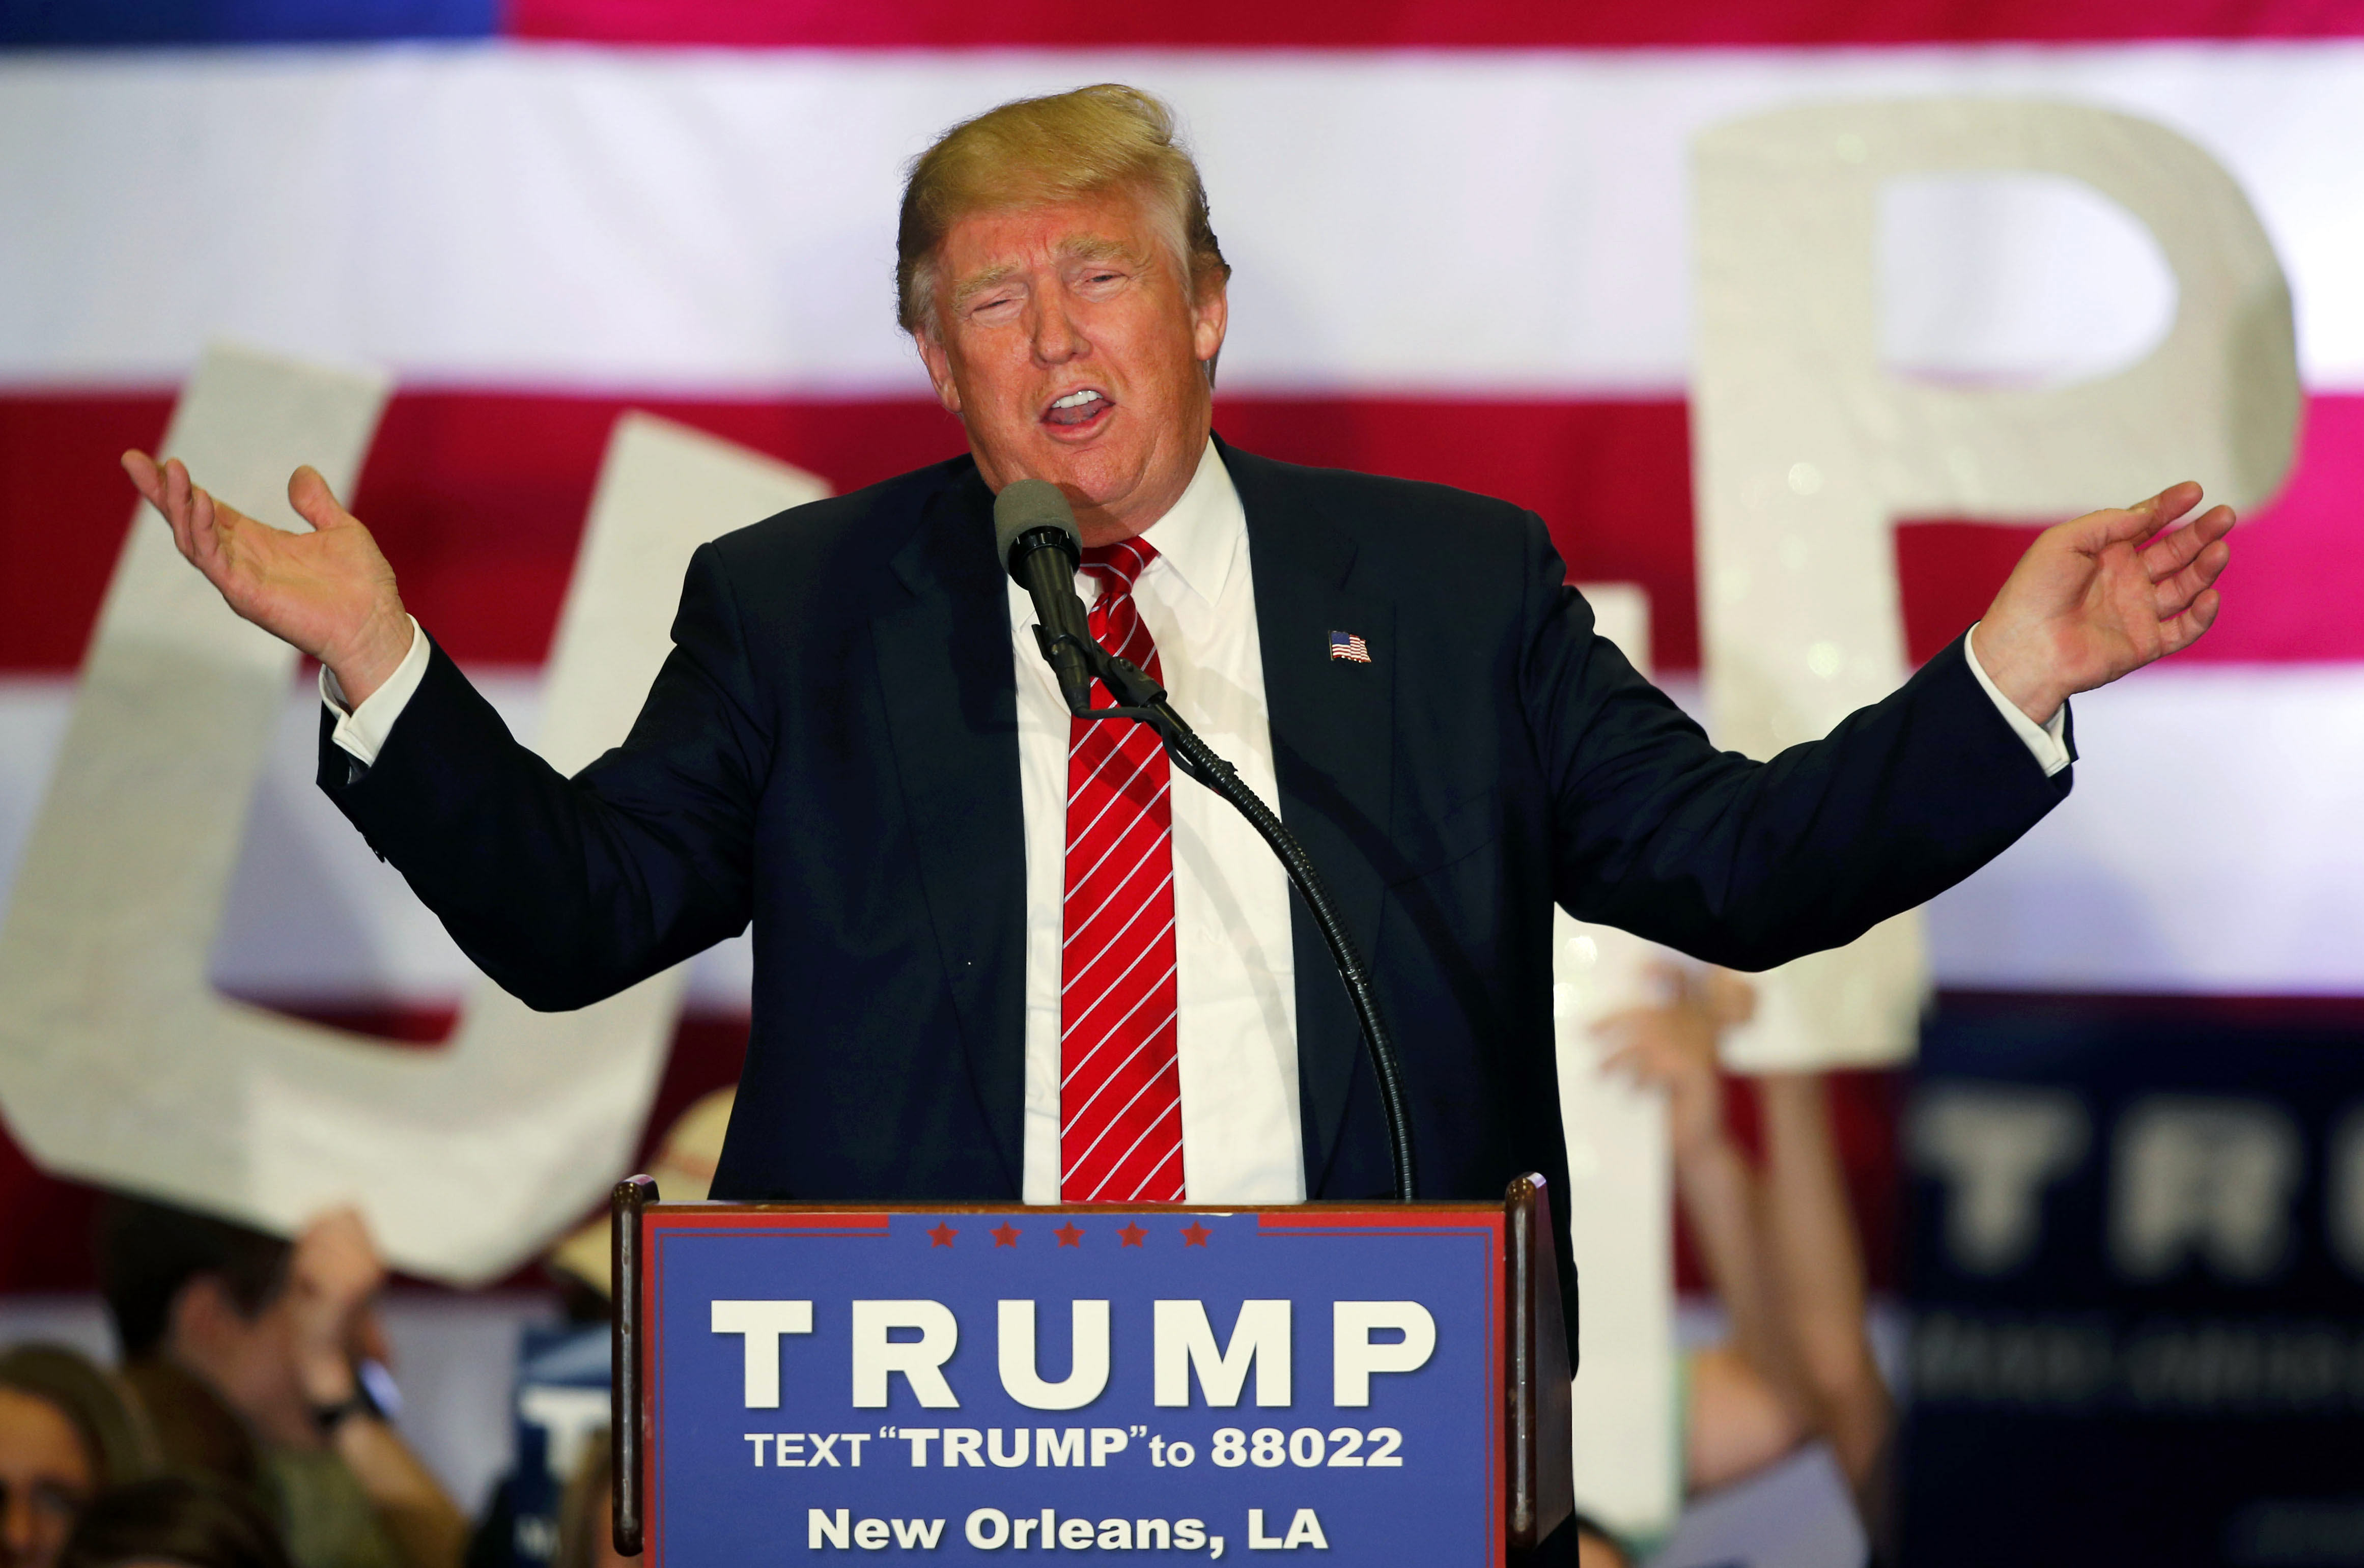 Donald Trumps Voicemails Hacked By Anonymous, Embarrassing Messages Leaked Online PA 25736922